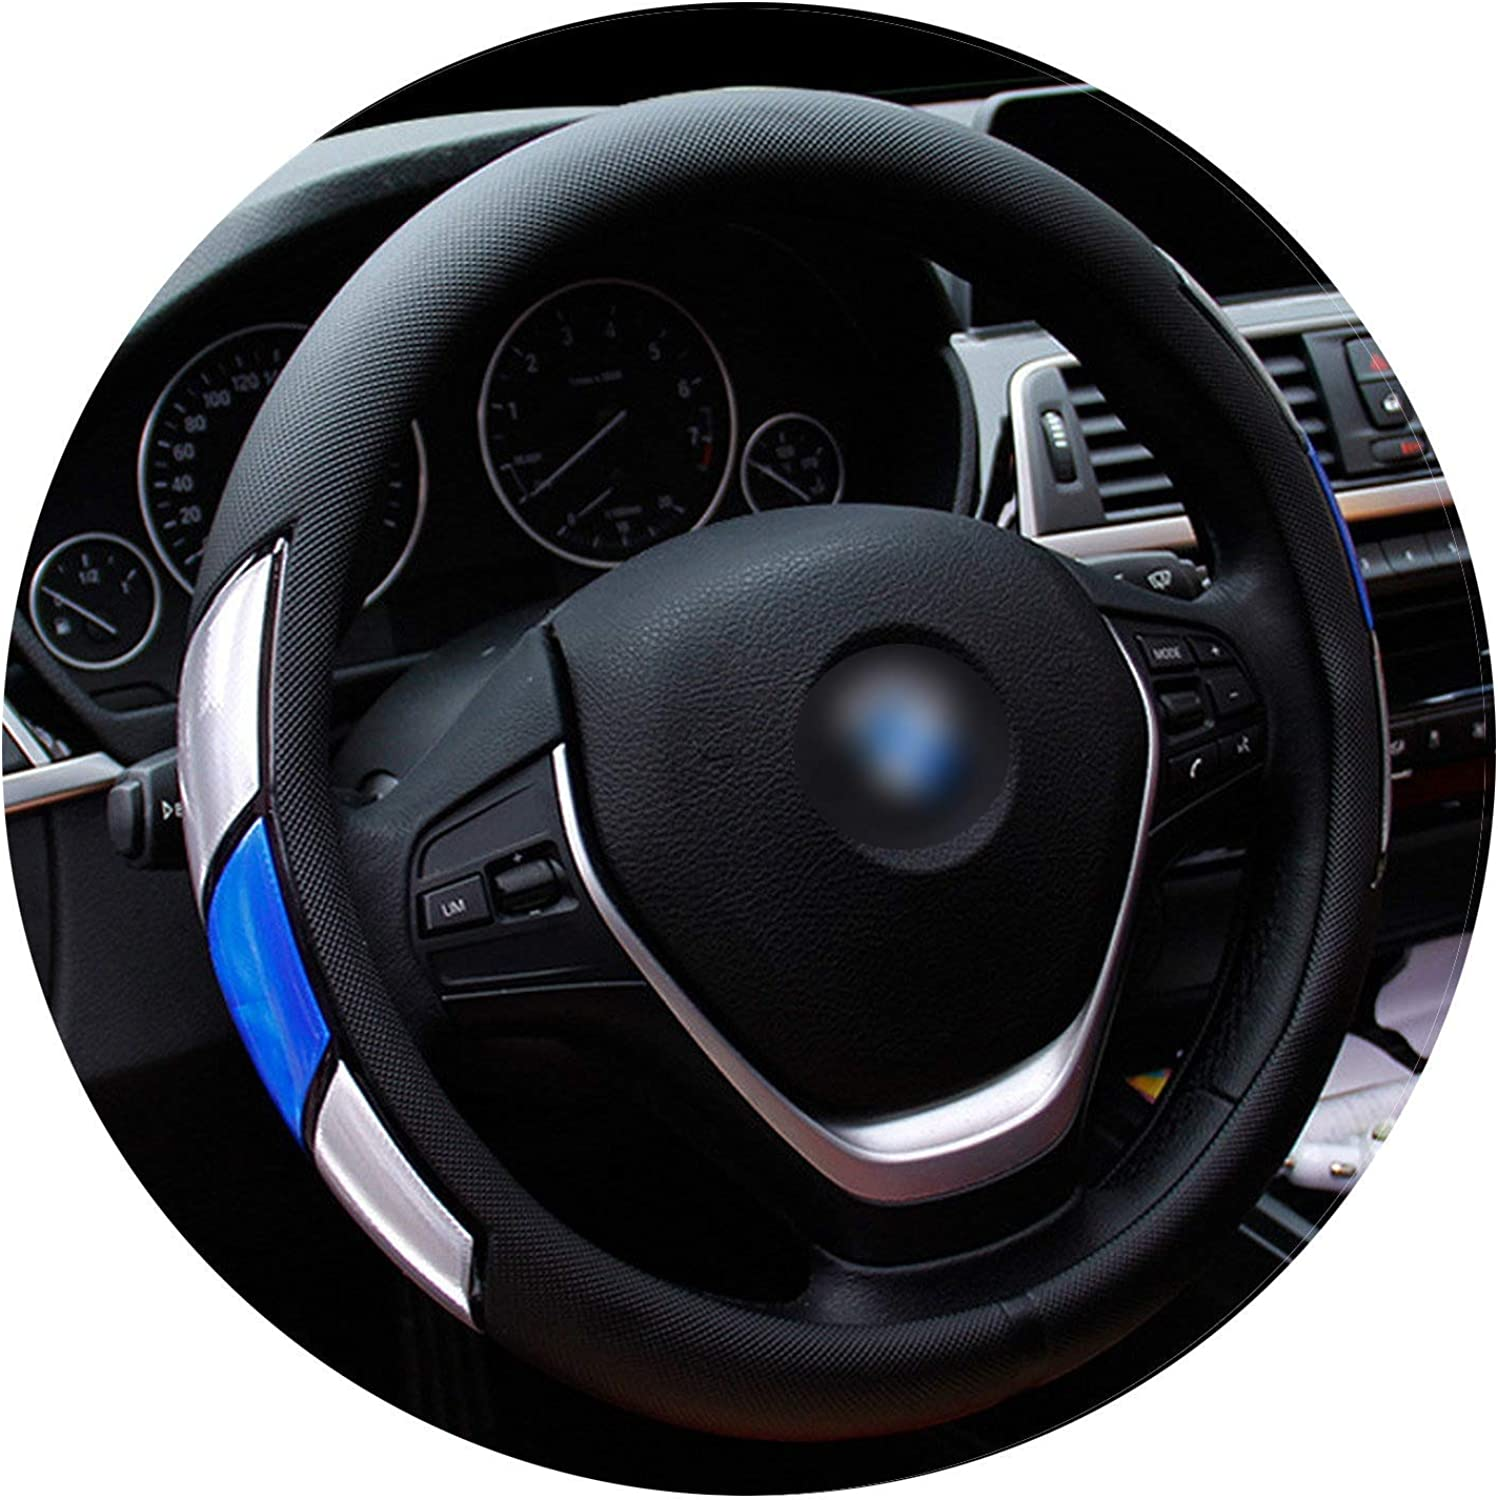 Reflective Movement Diamond Steering Wheel Cover 3 colors AntiSlip for 38Cm Car Styling SteeringWheel CarCovers